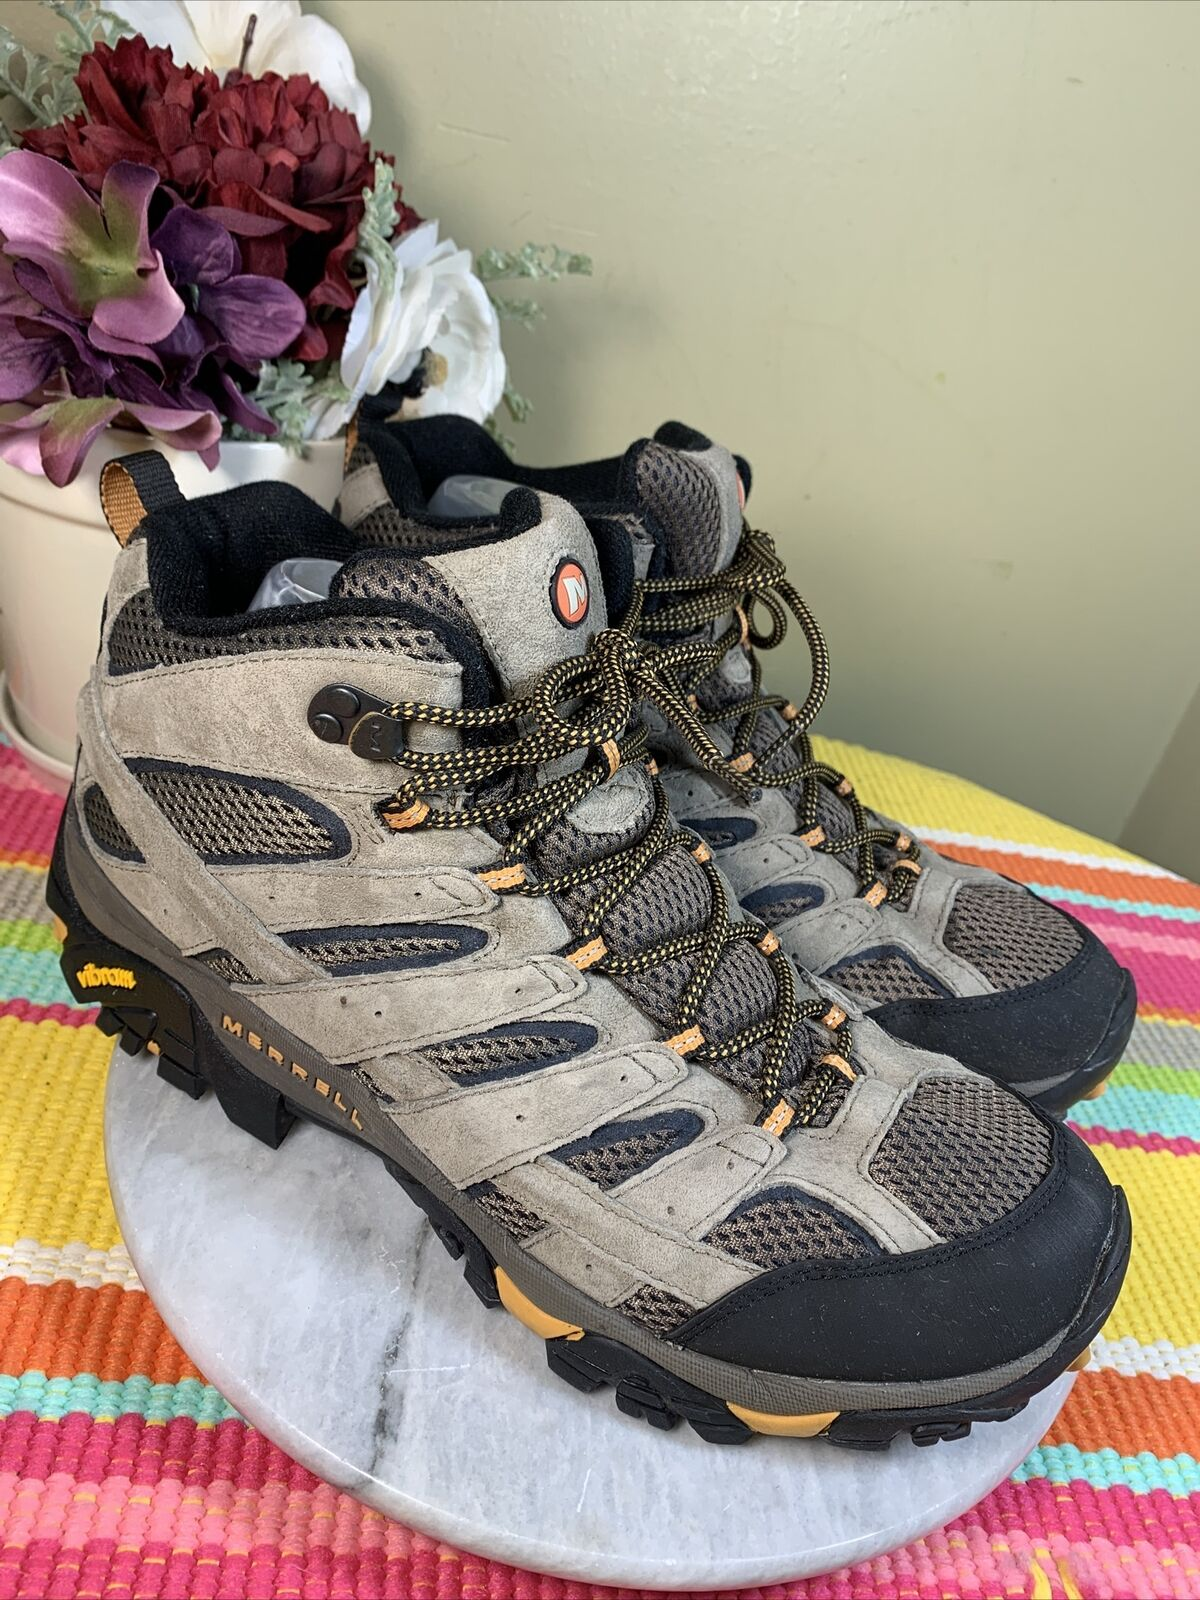 Merrell Hommes J06045 Grey Taupe Leather Walking Trail Shoes Men's 46.5 US 12 M